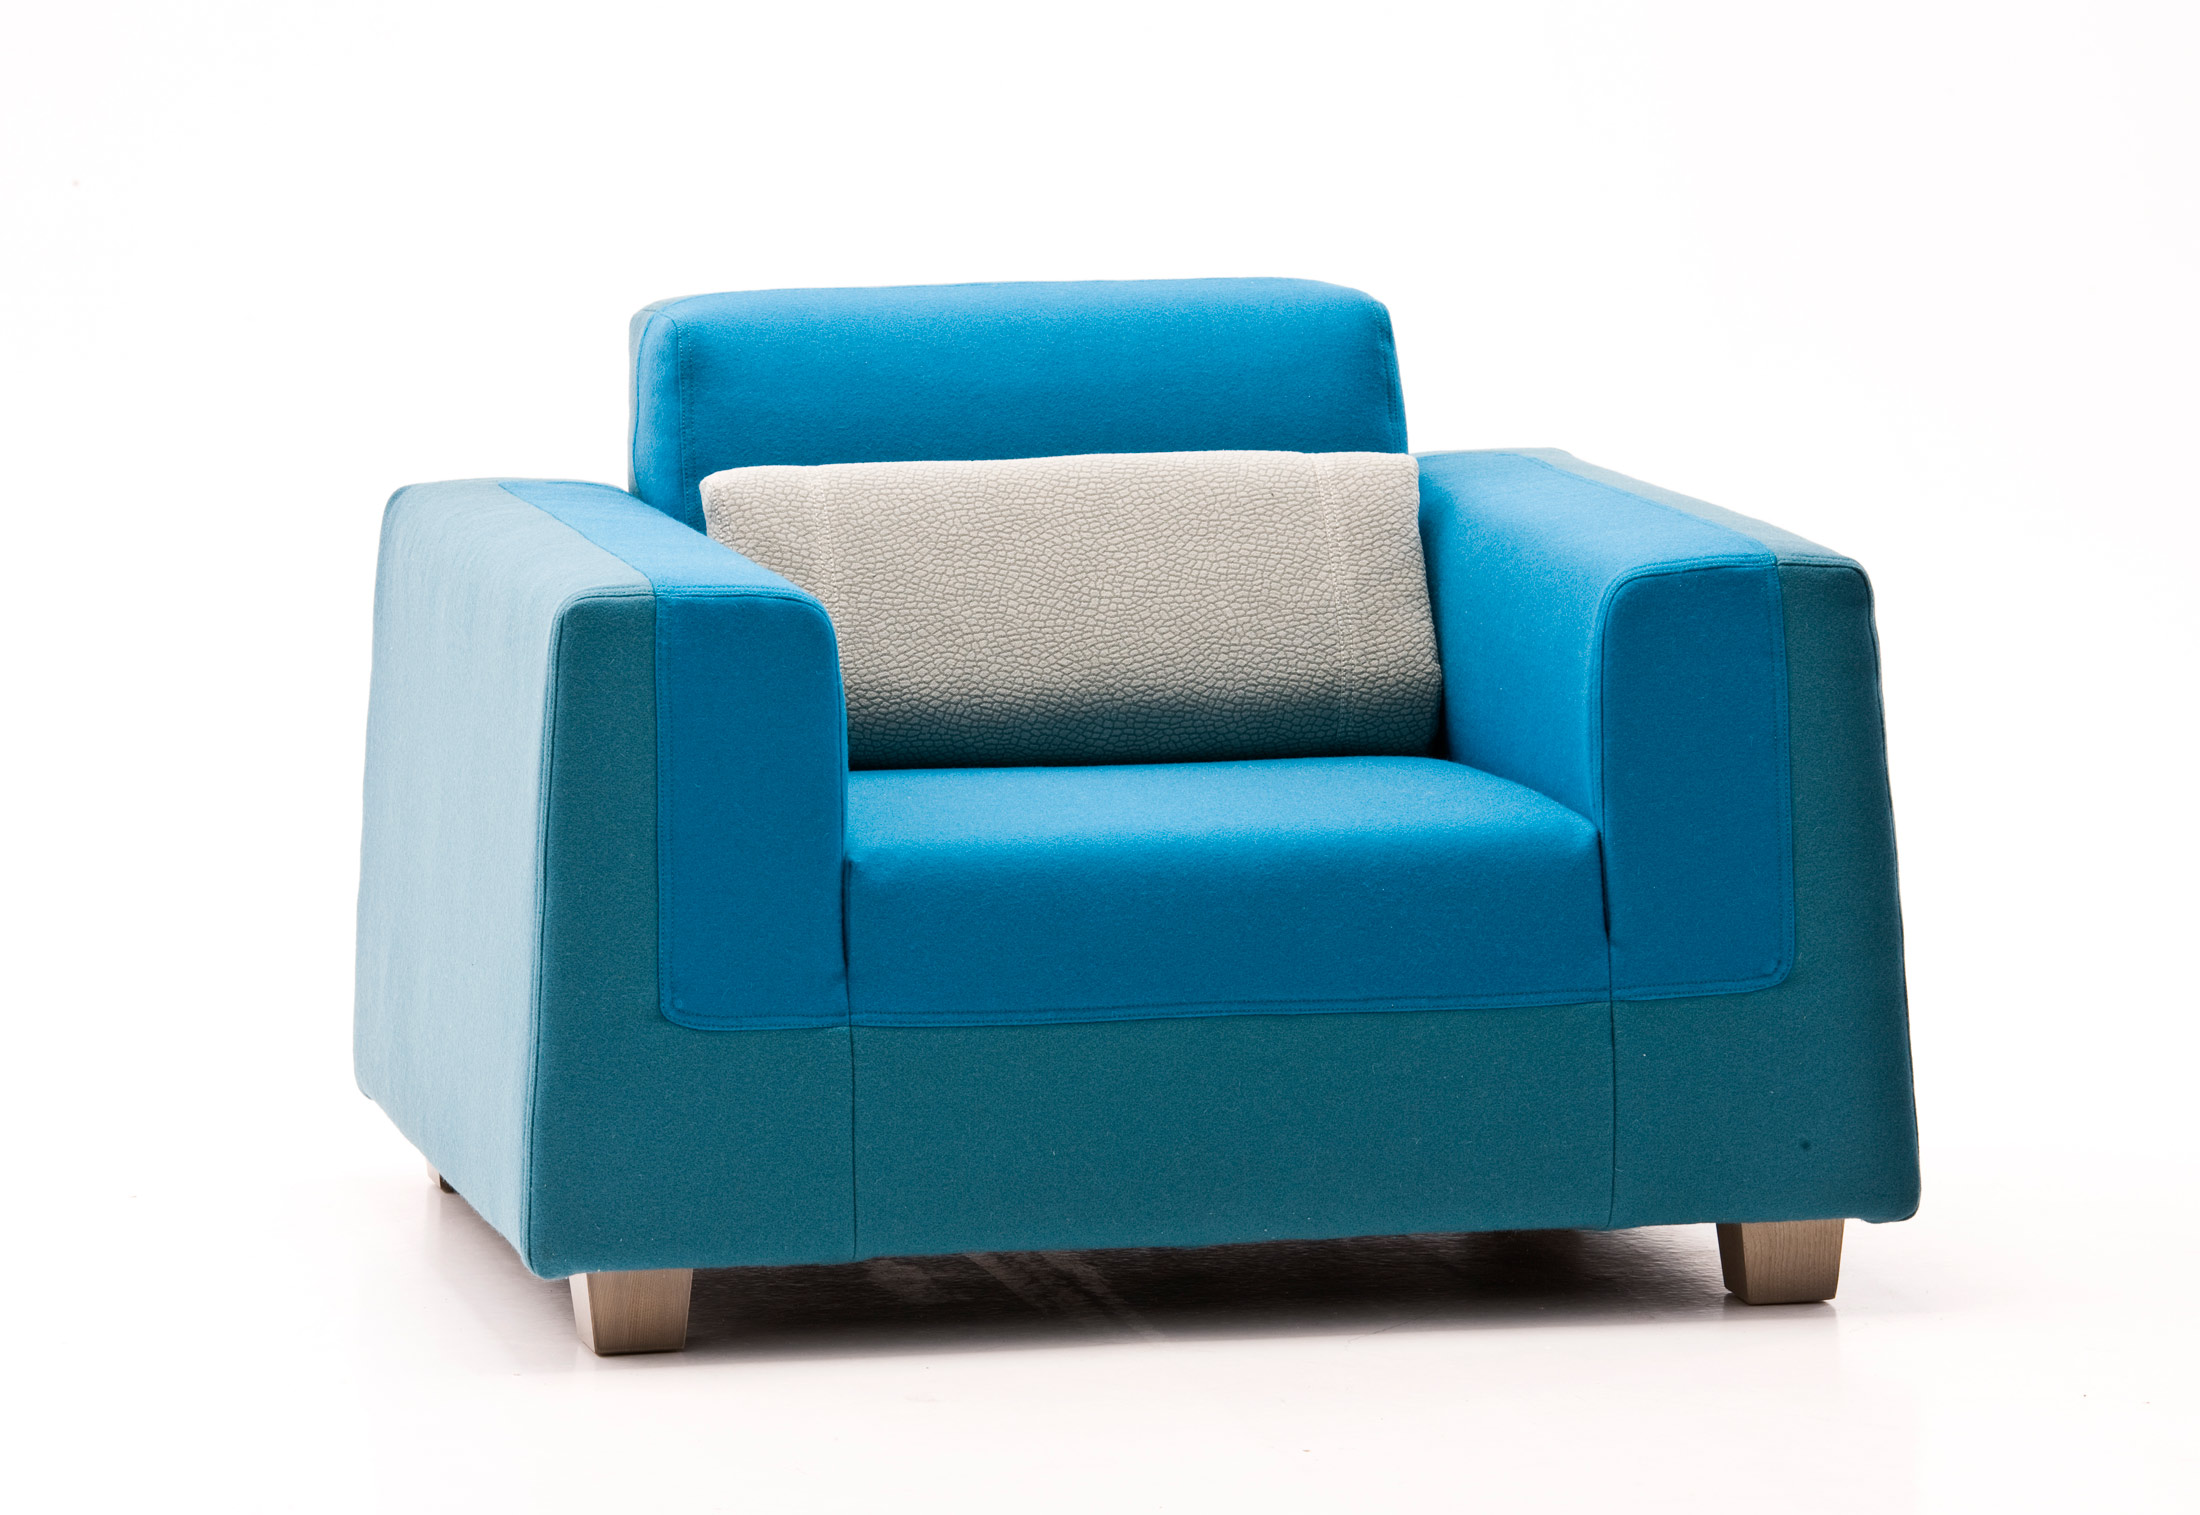 Diesel Collection Mr Softy Arm Chair By Moroso STYLEPARK